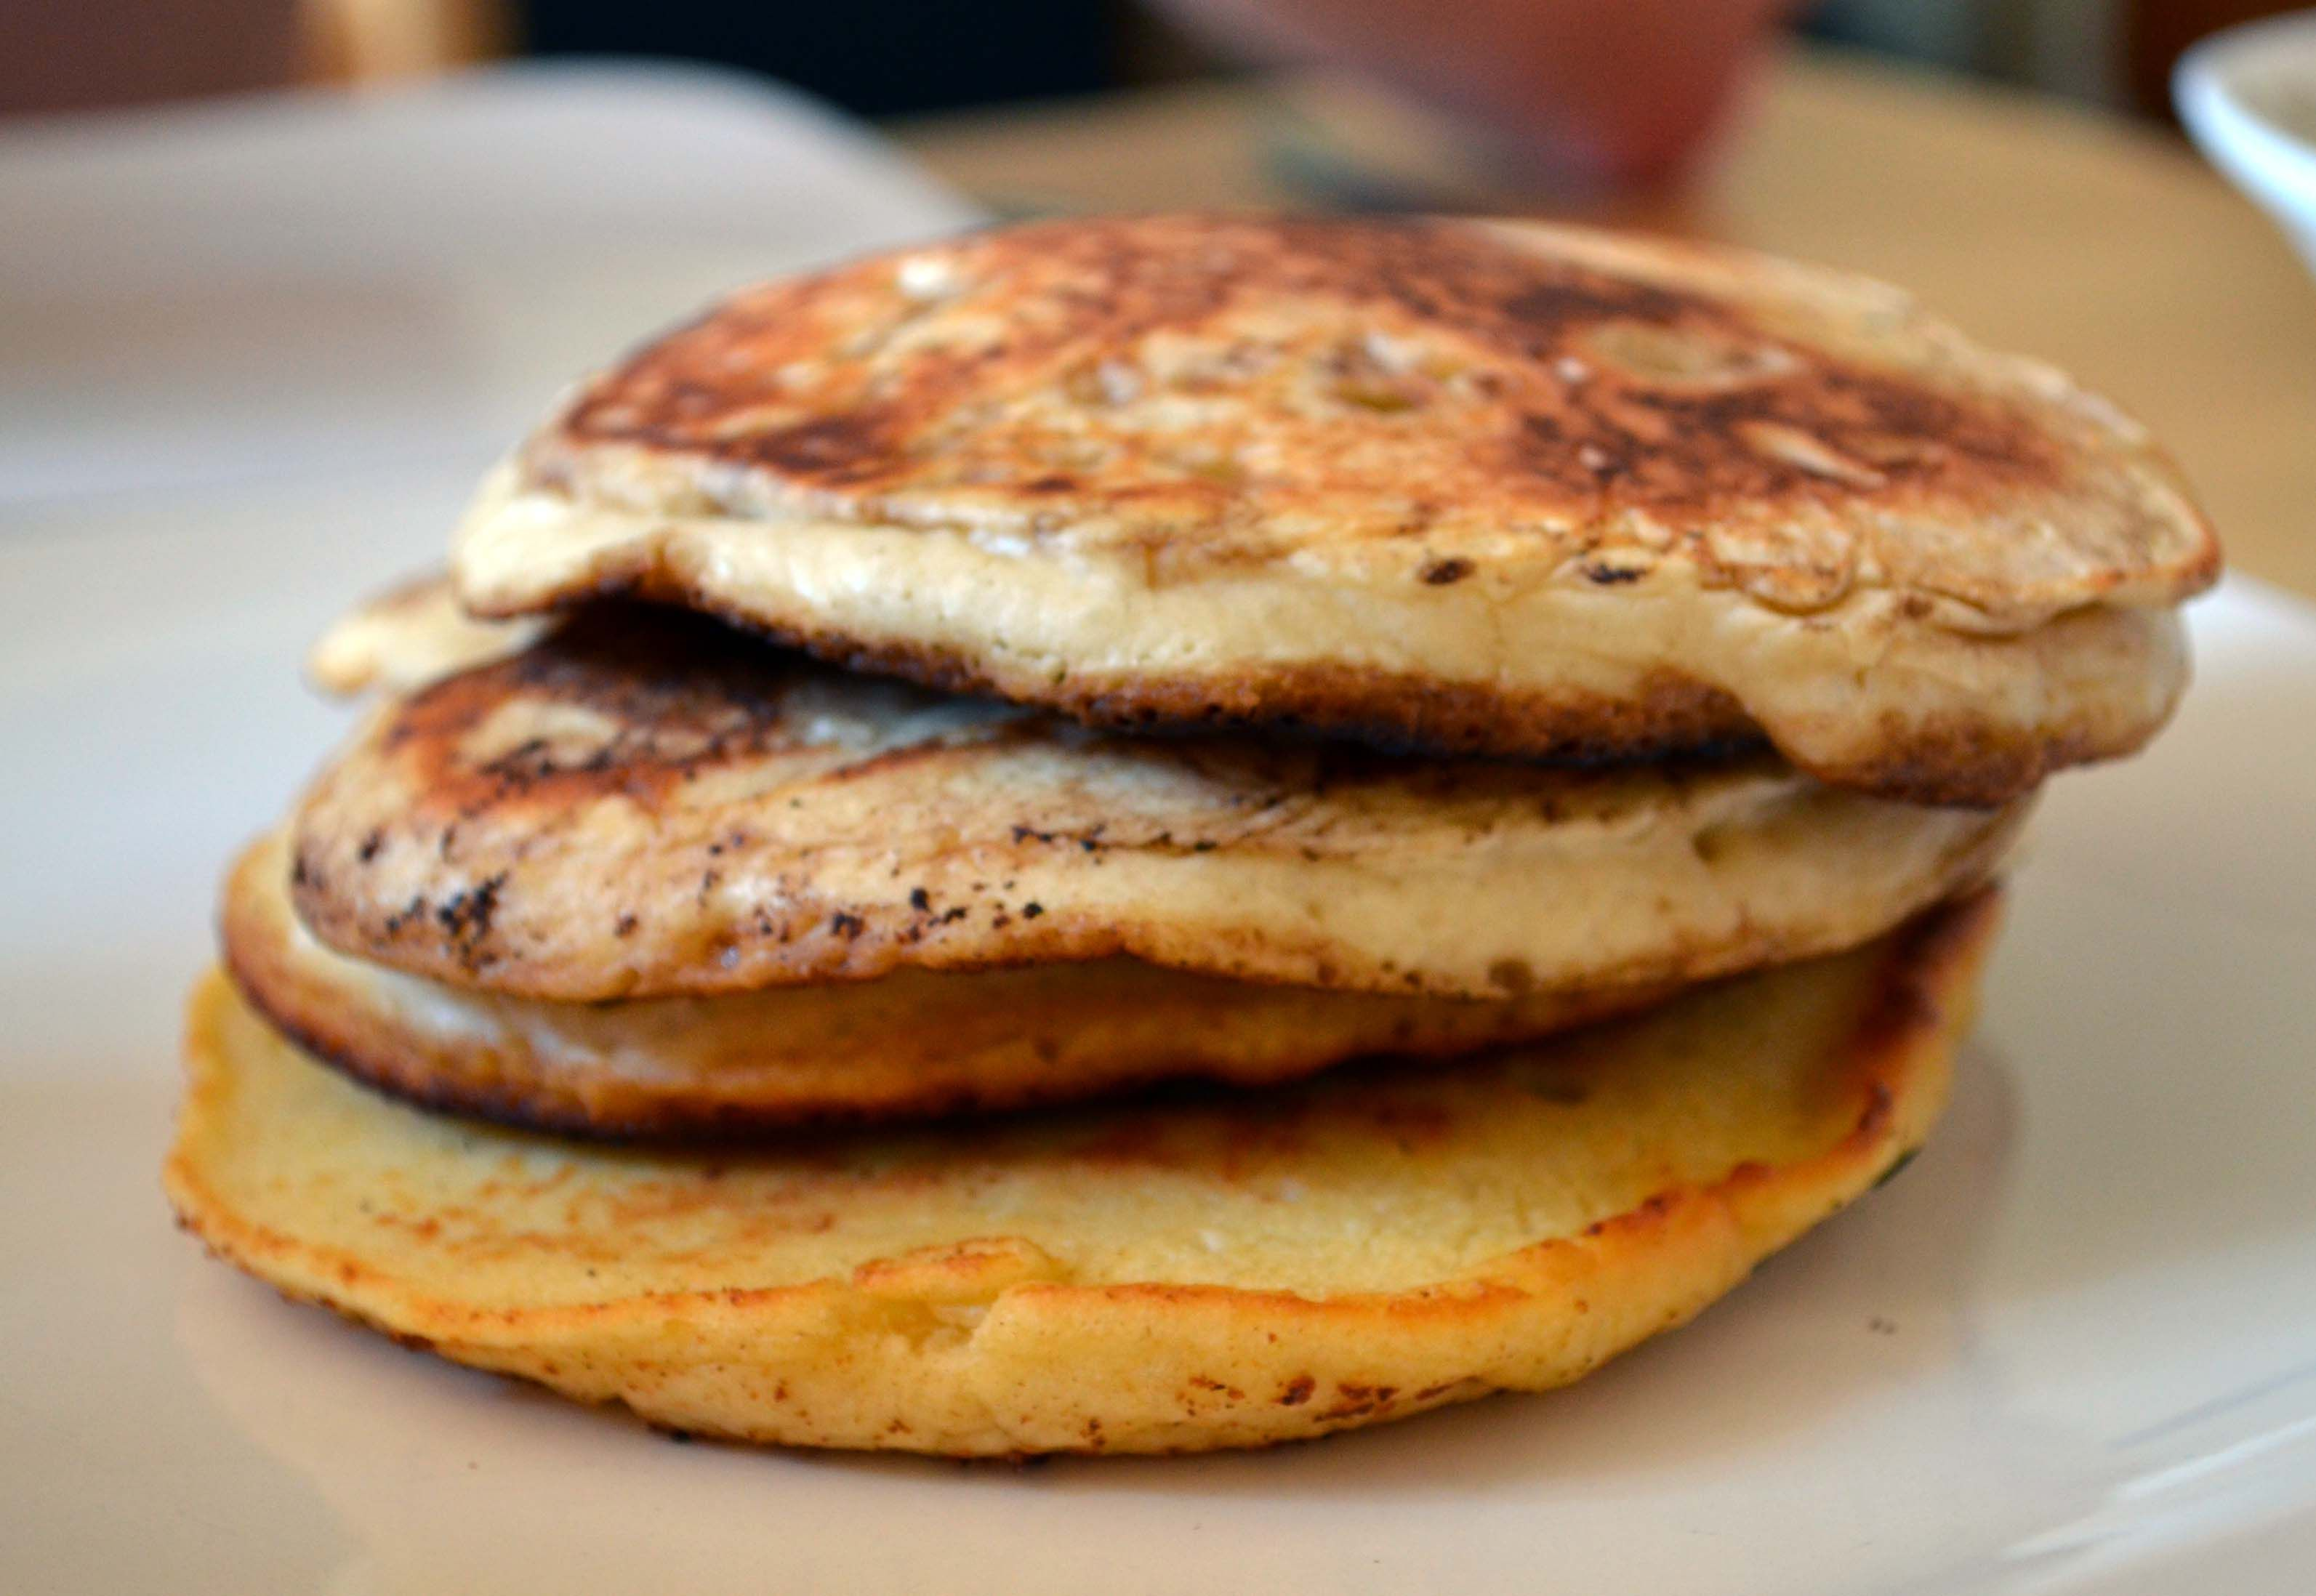 Recipe #61: American style pancakes (for my UK readers)